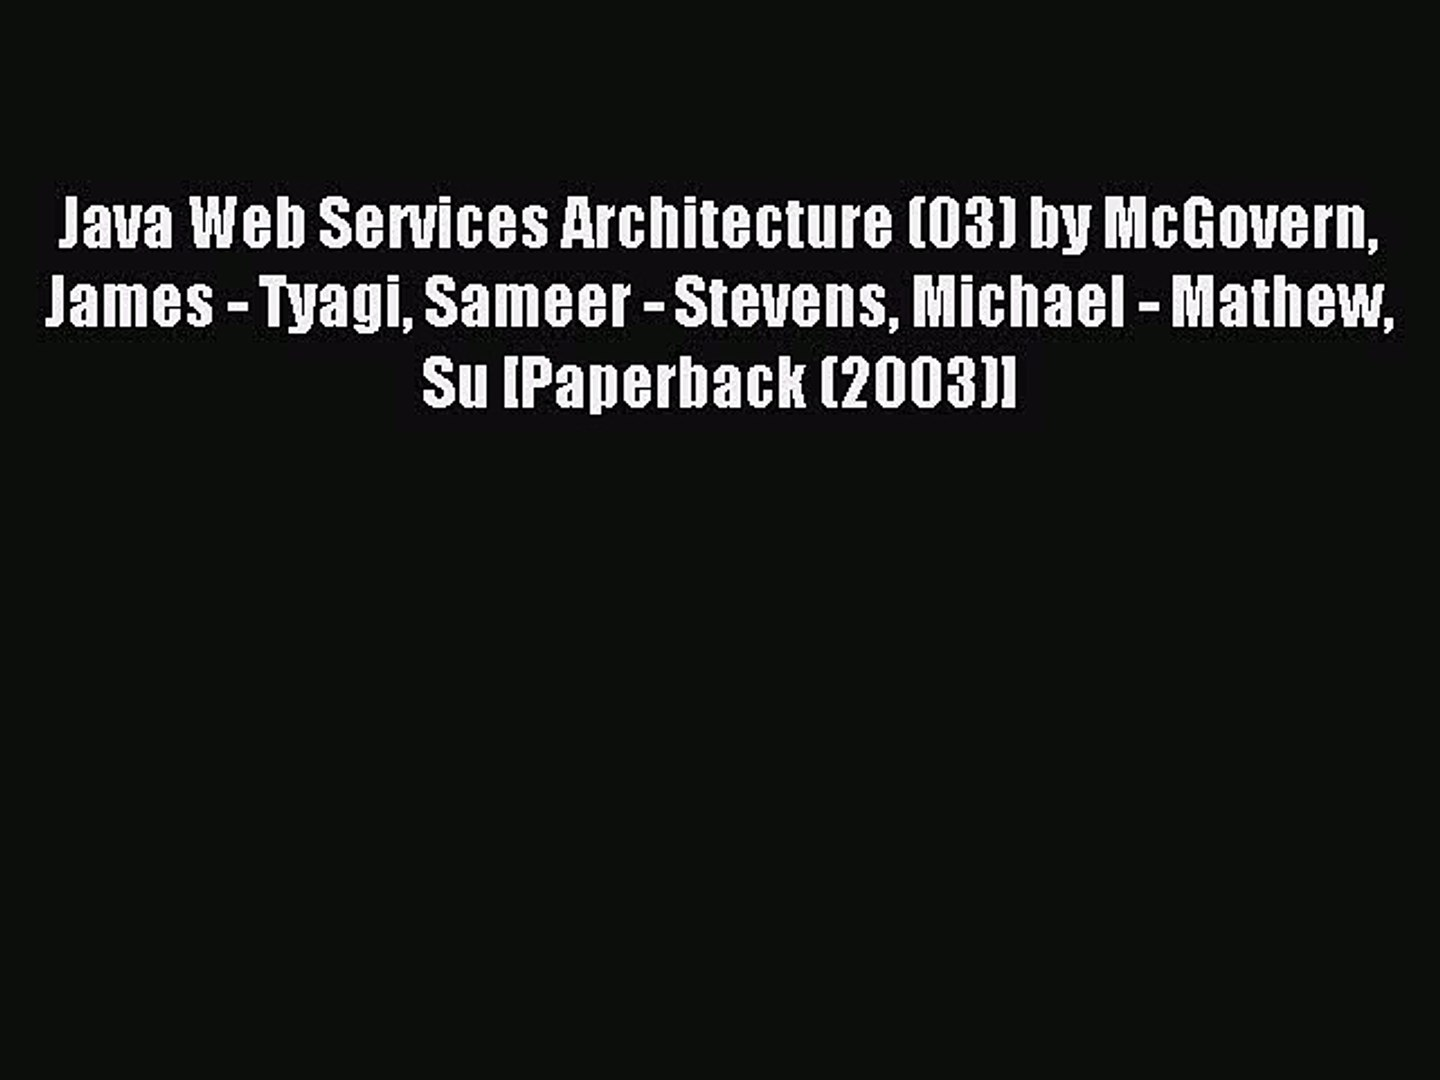 Read Java Web Services Architecture (03) by McGovern James - Tyagi Sameer - Stevens Michael